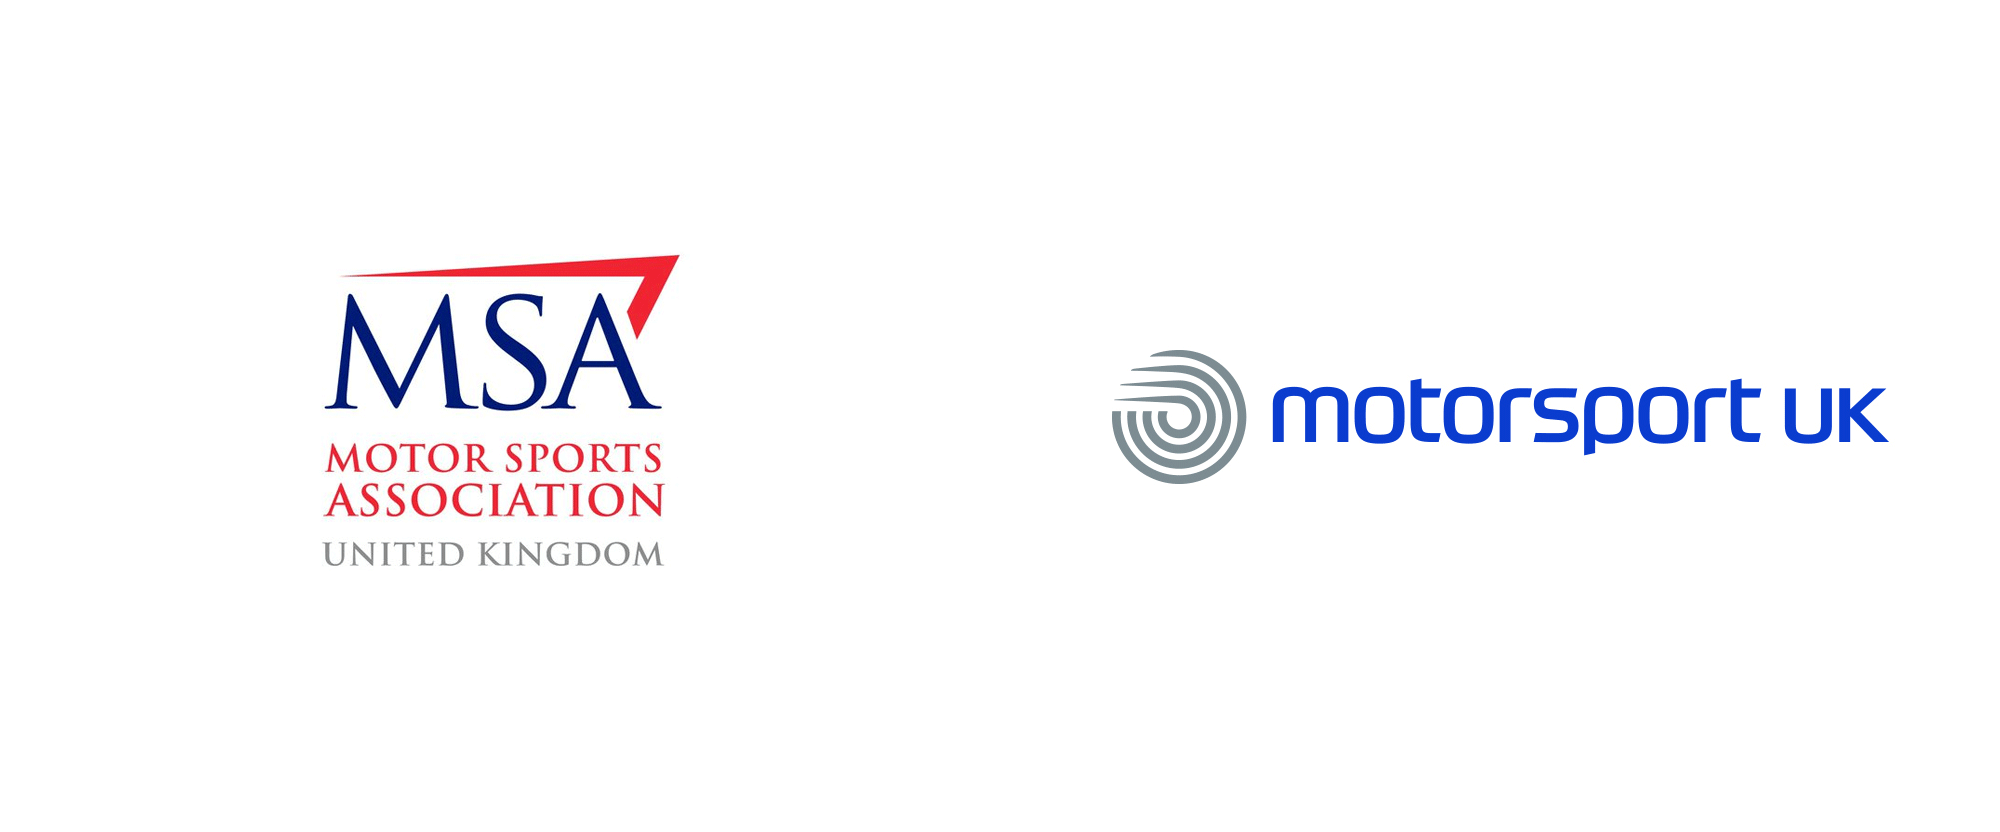 New Logo And Identity For Motorsport Uk By Rbl Brands Identity Logo Identity Logos